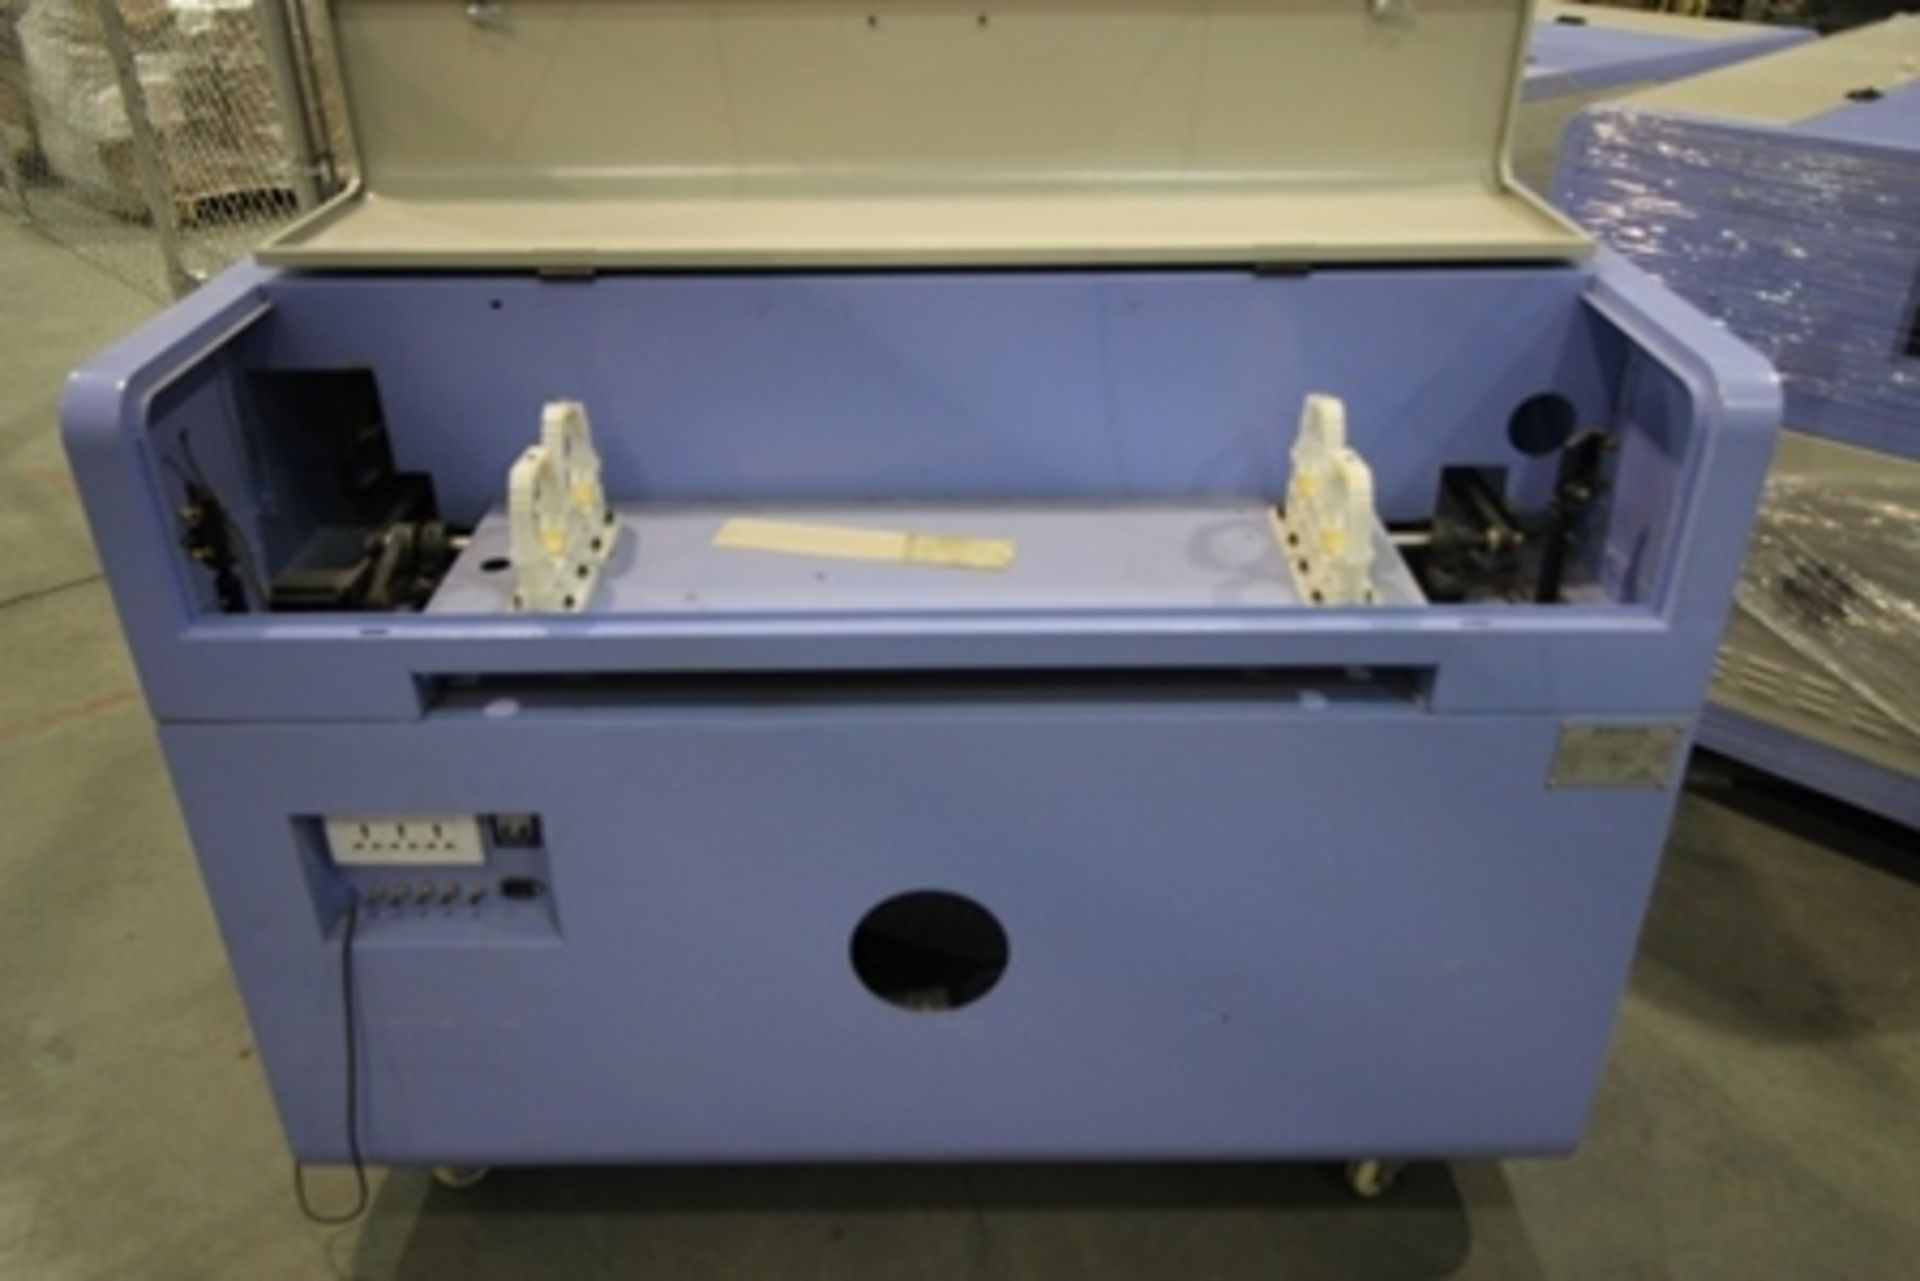 Lot 18 - 2017 Phillican CO2 laser engraver and cutting machine, model 6090. Laser power: 80x2w, 3.2Kw, series